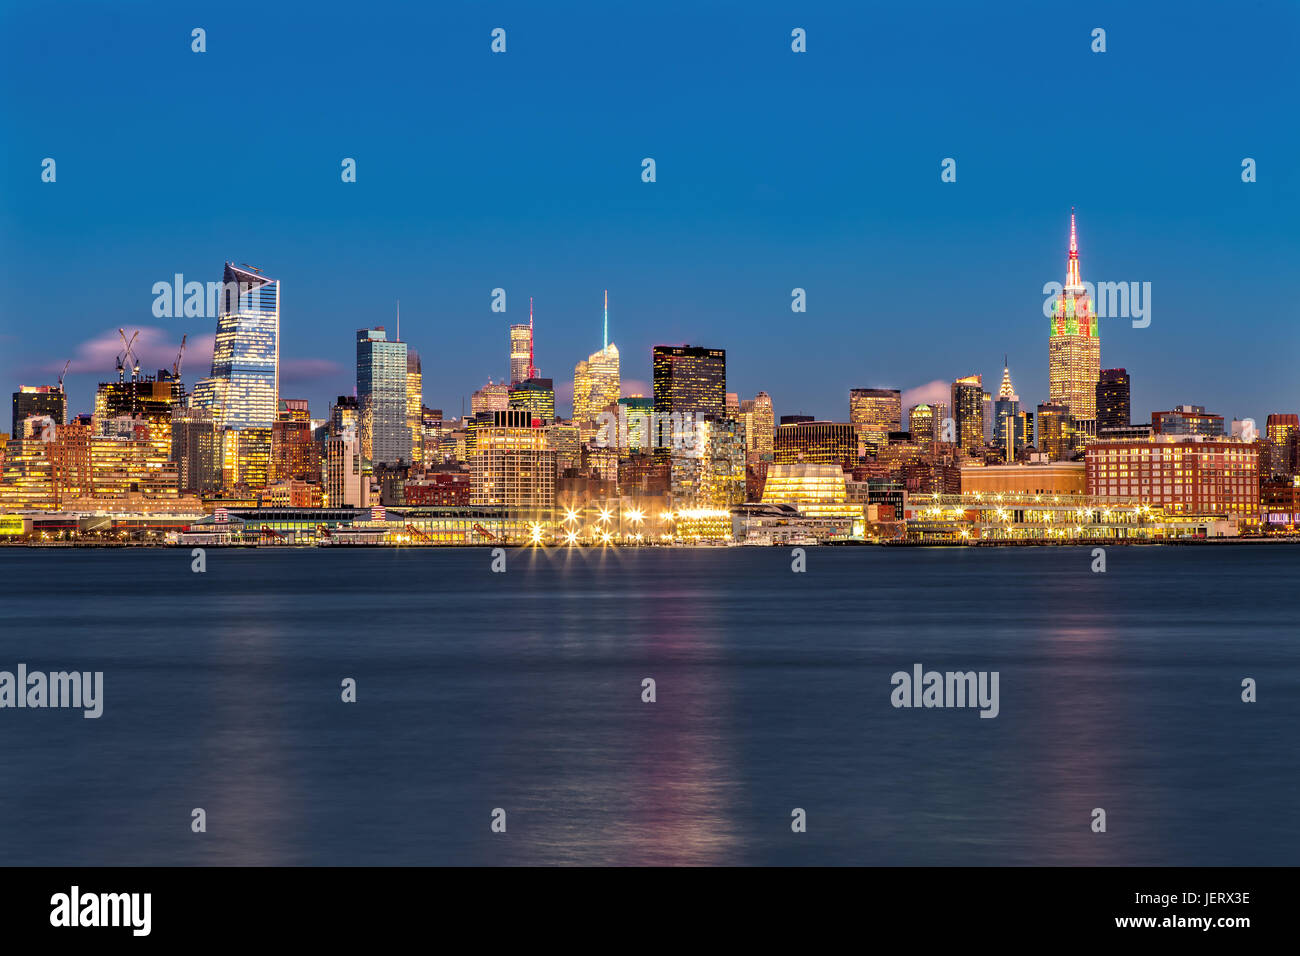 Empire State Building and Midtown Manhattan at Night - Stock Image